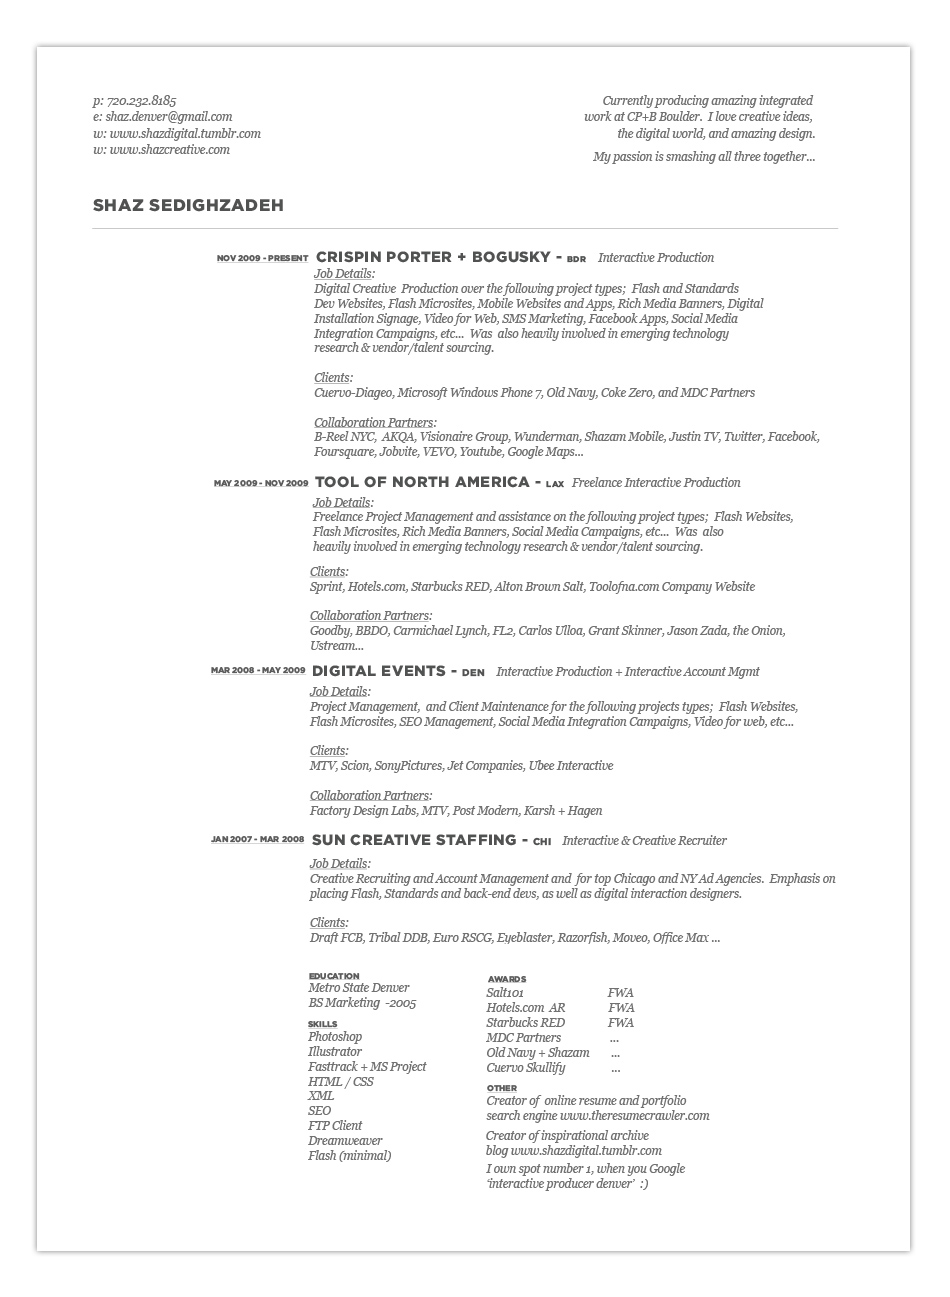 Integrated producer resume